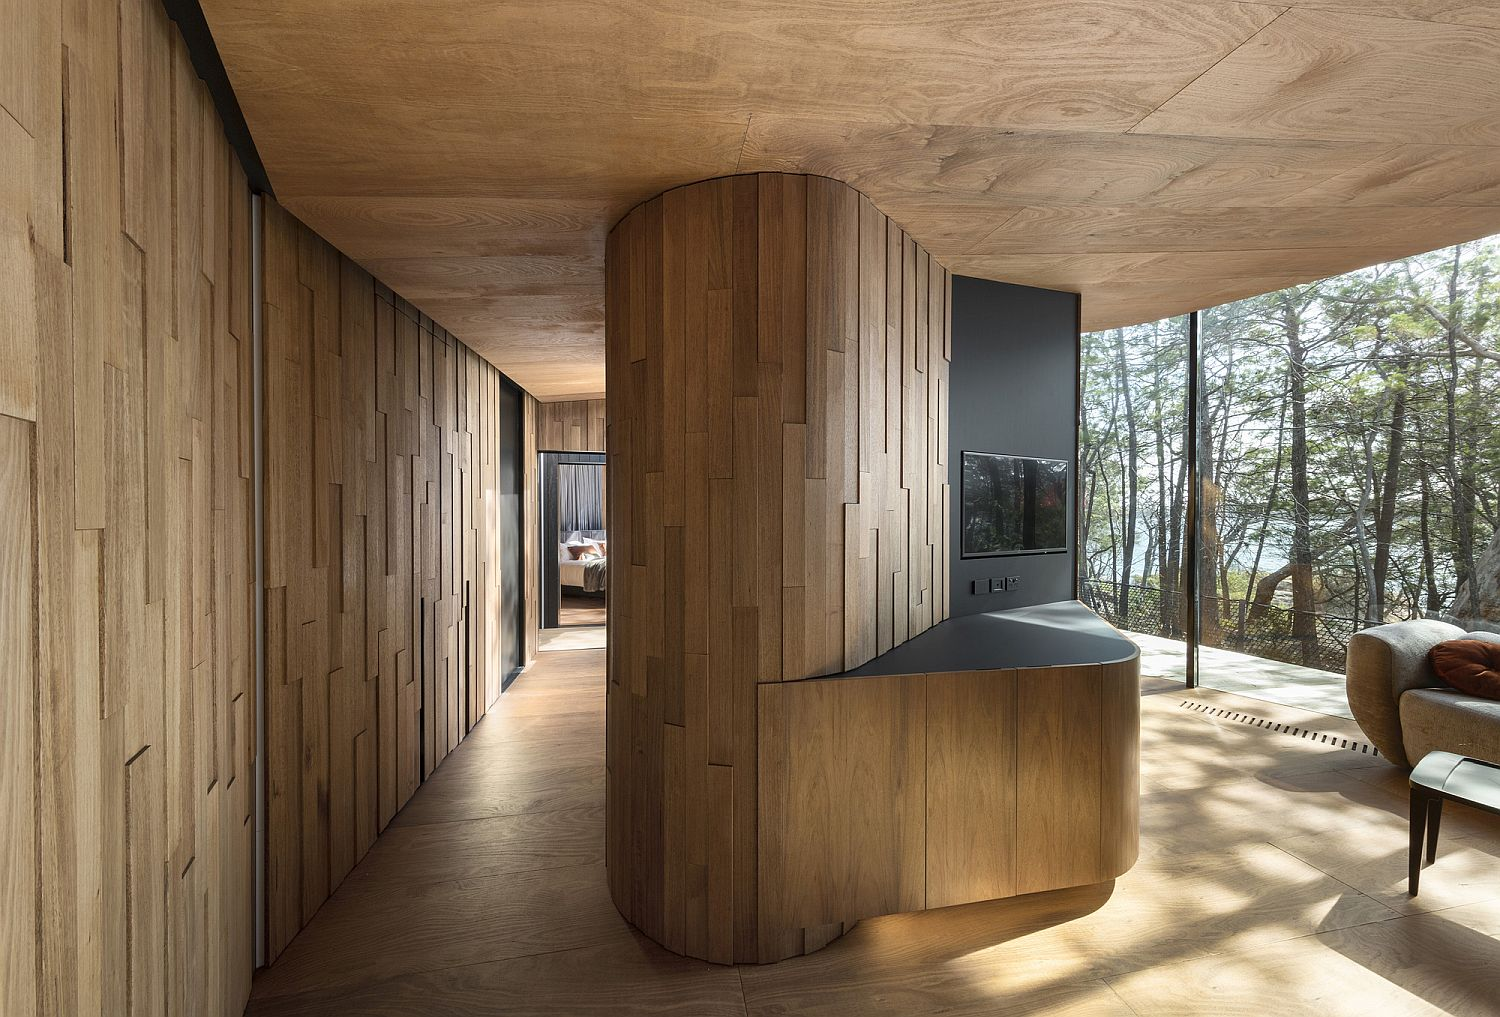 Fabulous use of locally sourced wood inside the stylish pavilions